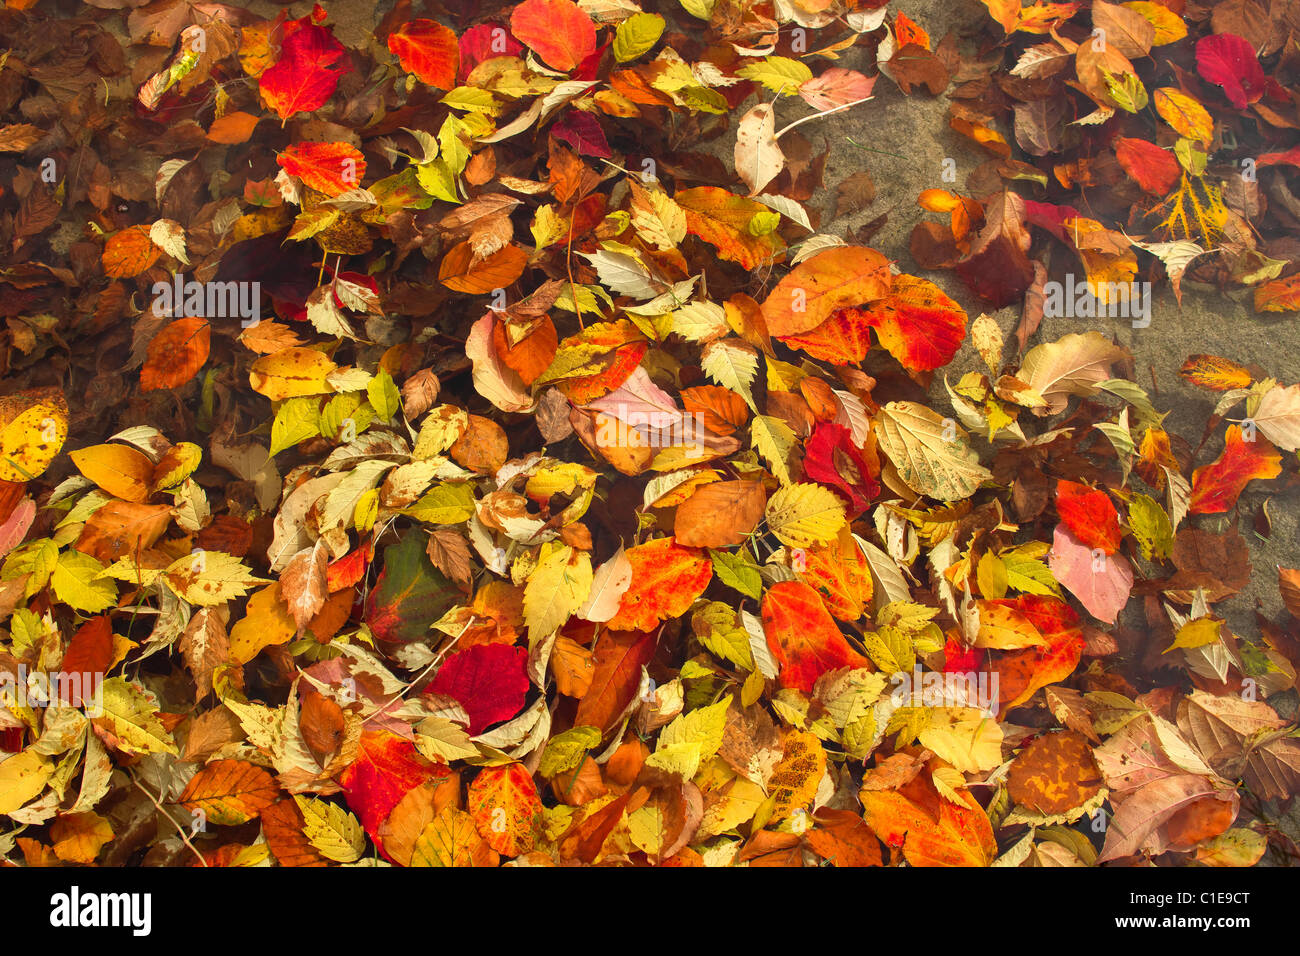 Floating Fall Leaves in Pond at Public Park in Autumn - Stock Image